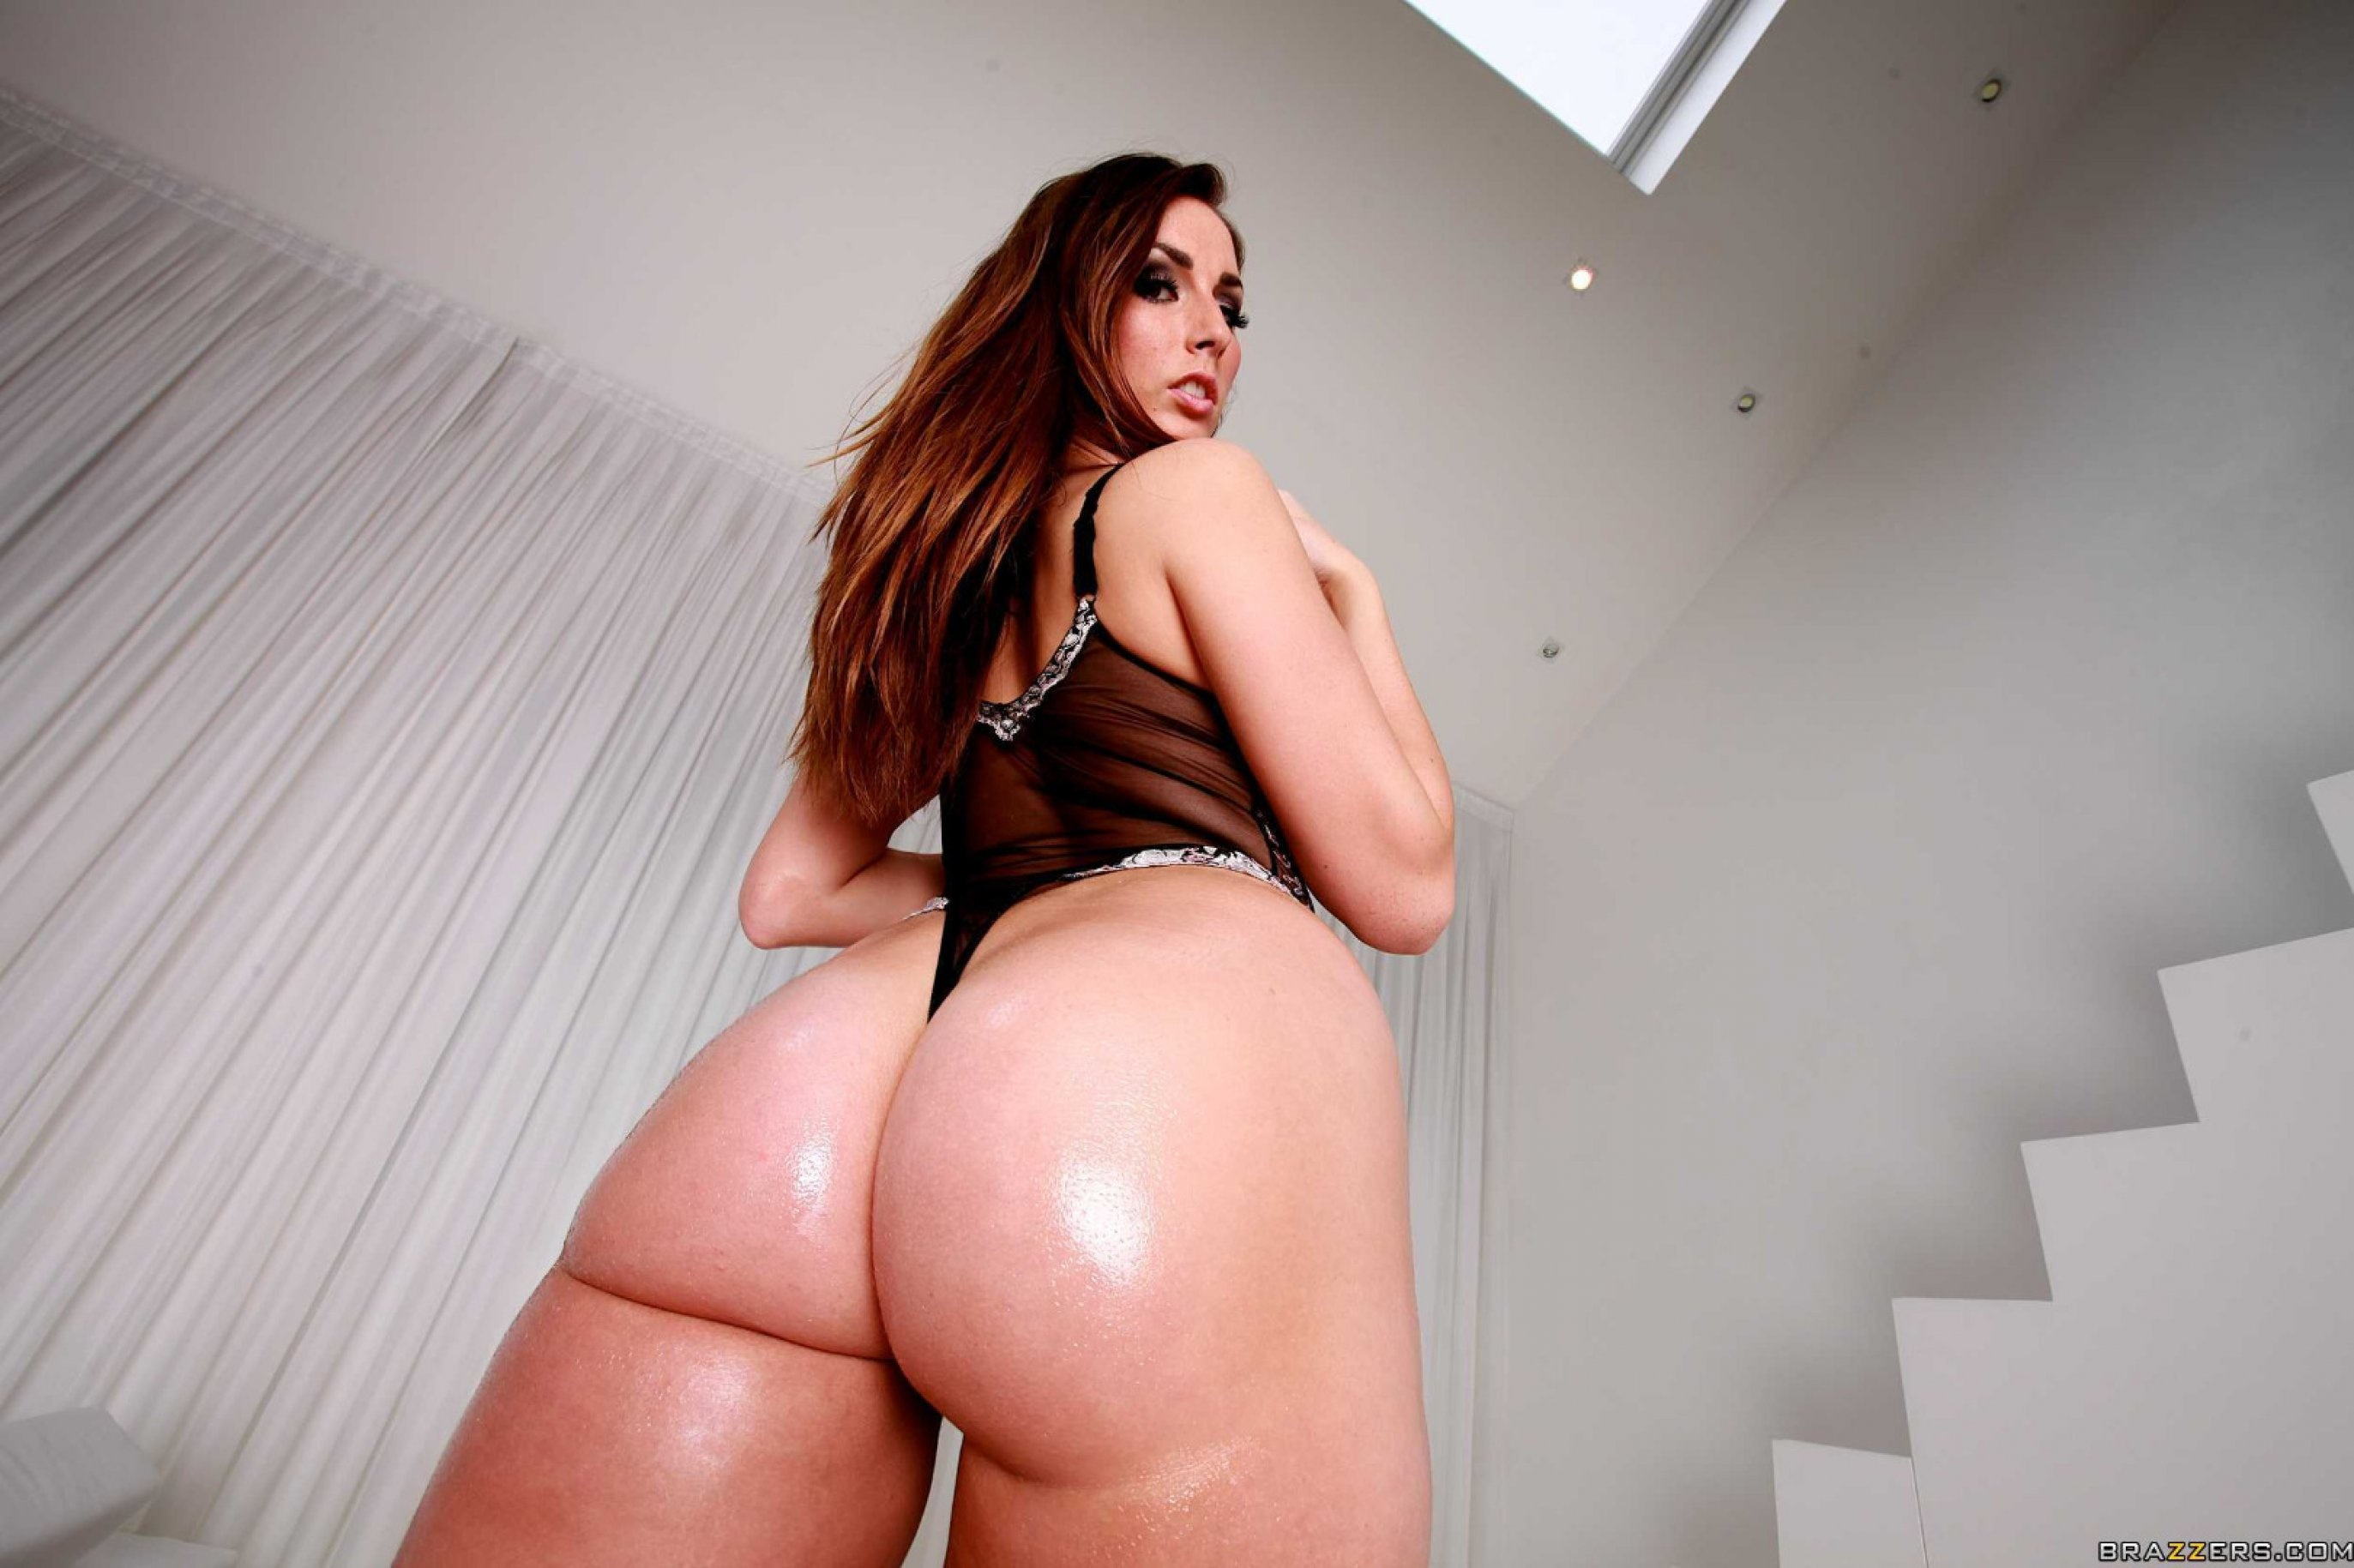 Big butt pornstars like it big — photo 3